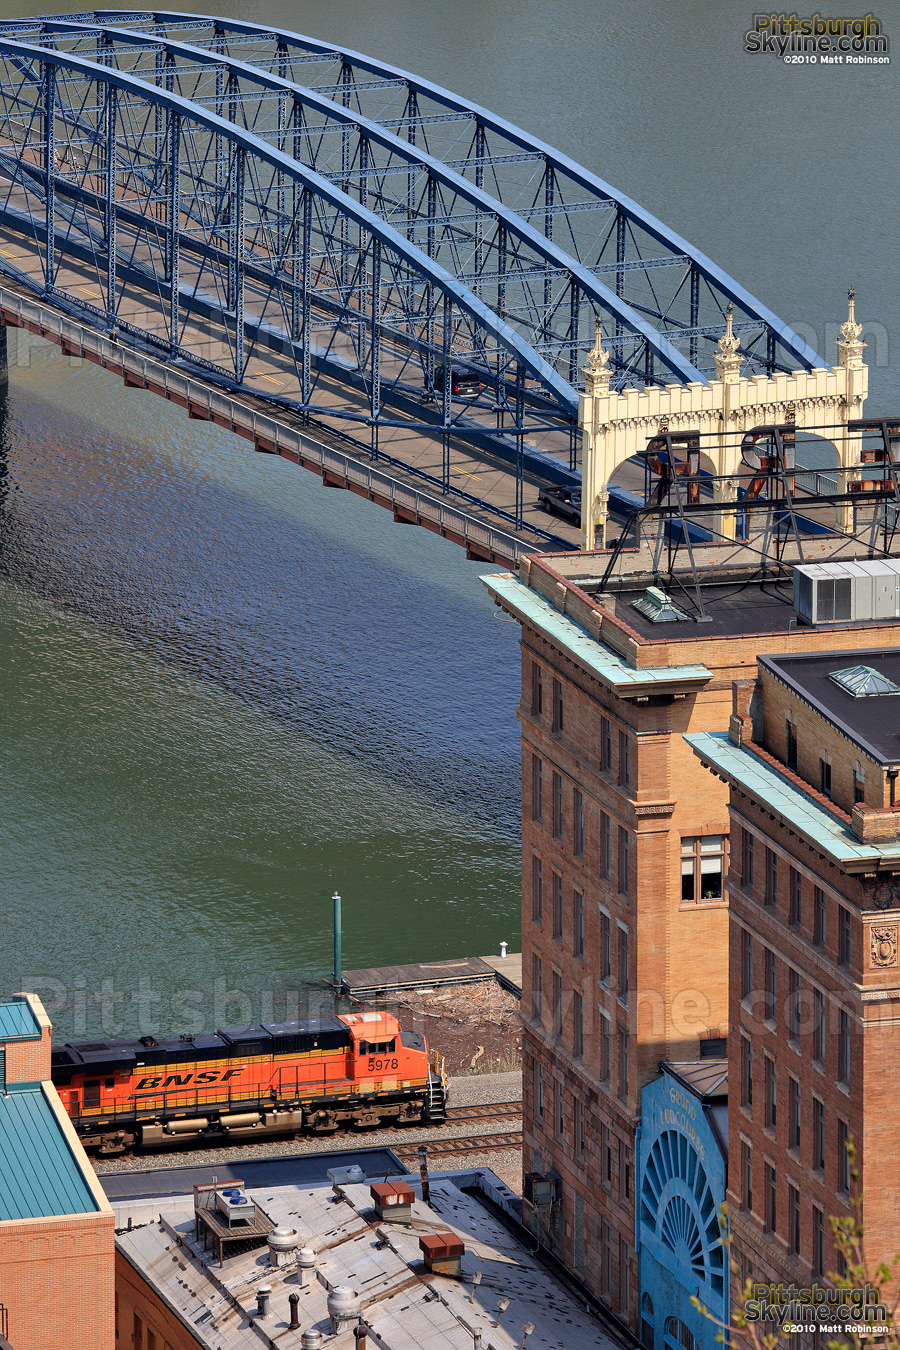 Smithfield Street Bridge and BNSF Locomotive